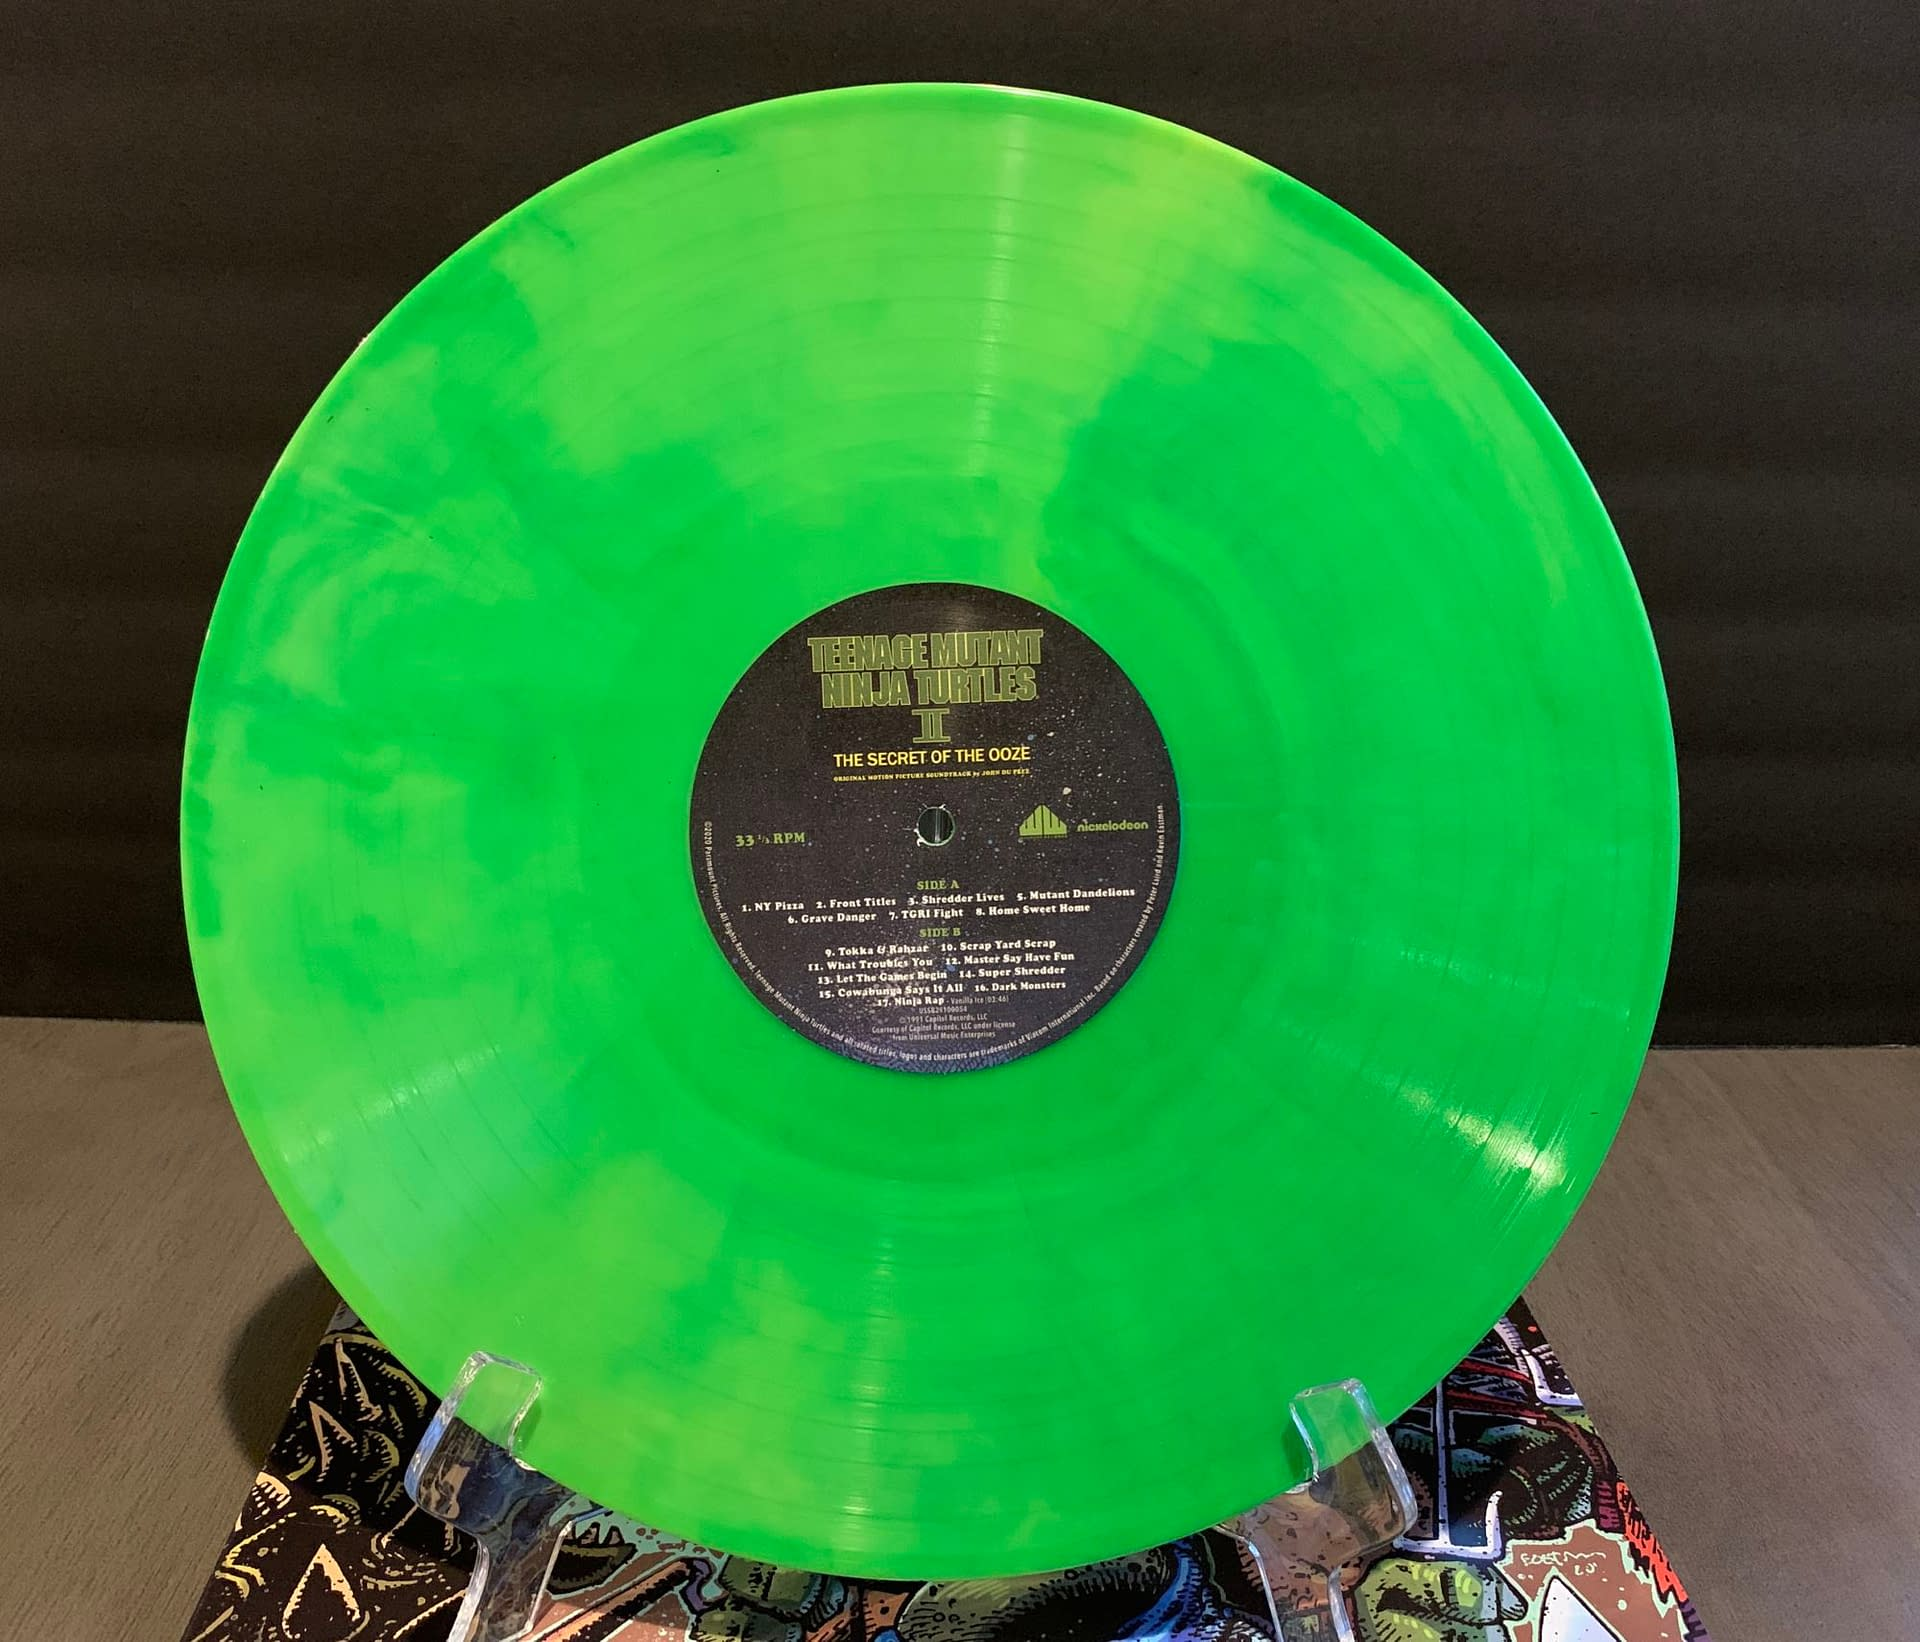 TMNT Fans: Waxwork Records Secret Of The Ooze Vinyl Is Incredible